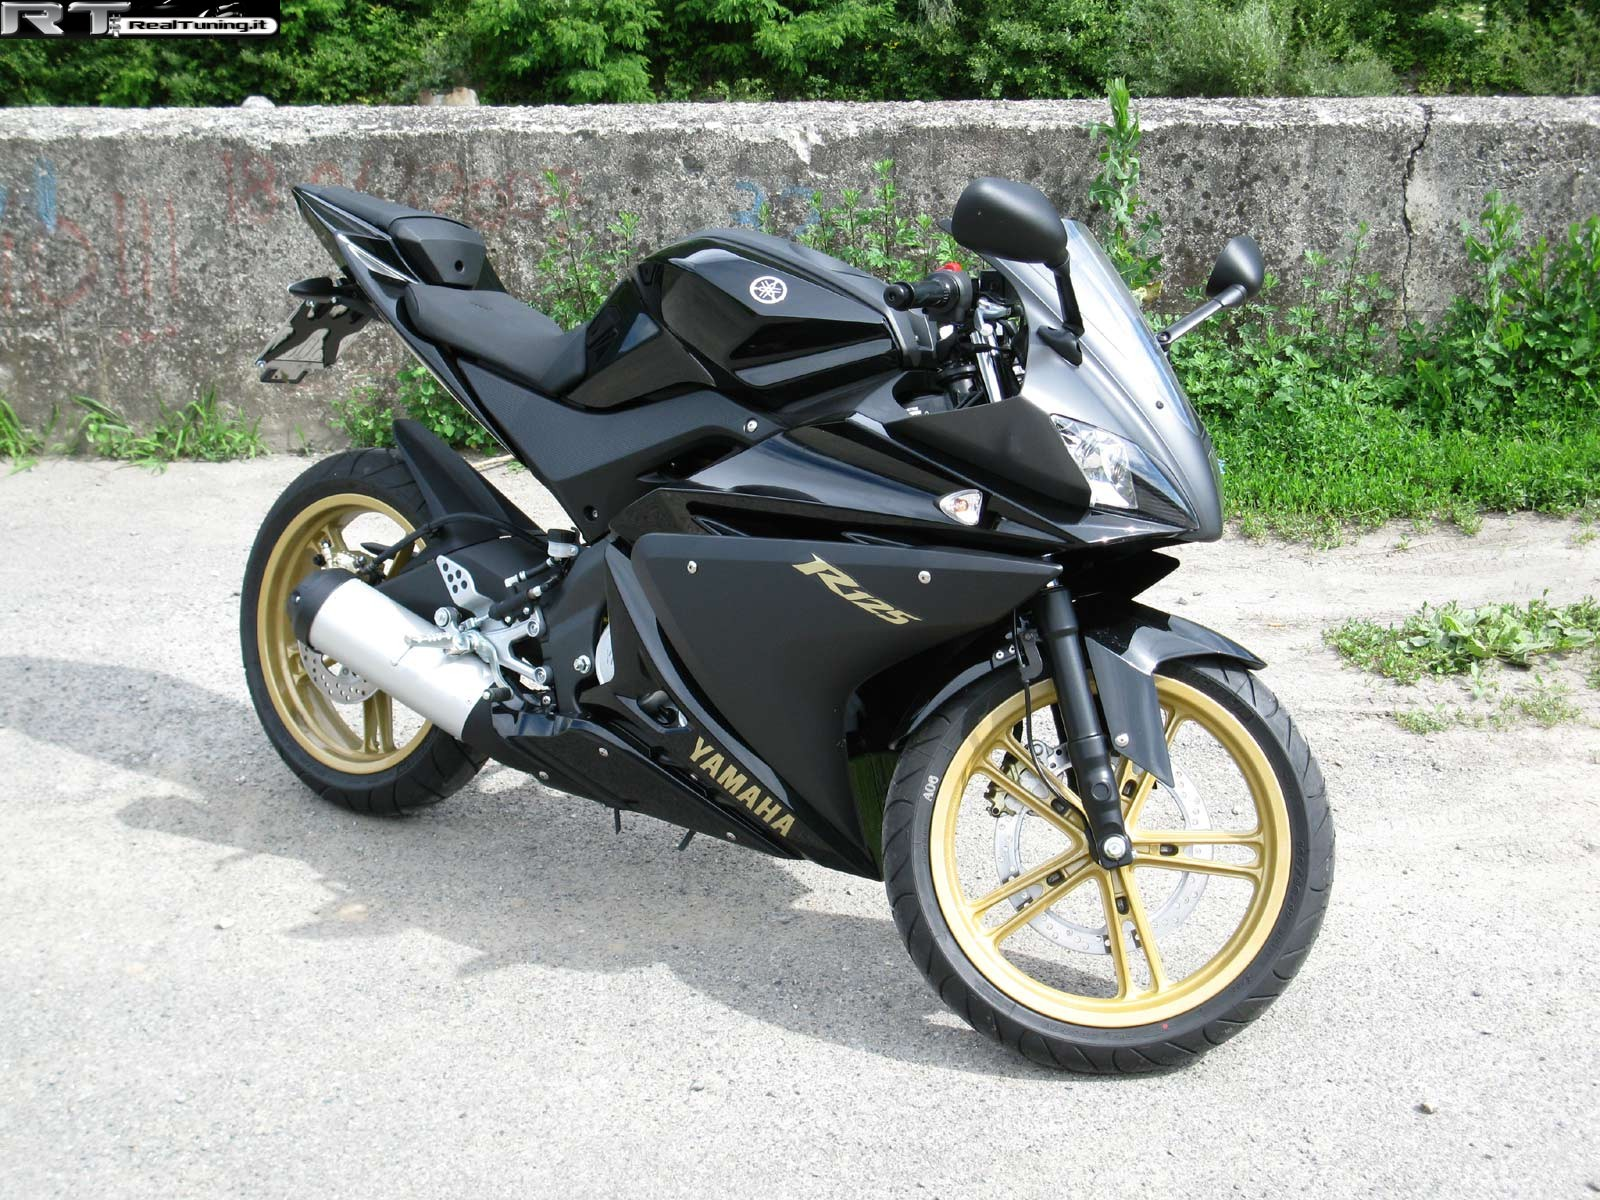 yamaha r125 di plozza tuning foto 1 realtuning it. Black Bedroom Furniture Sets. Home Design Ideas